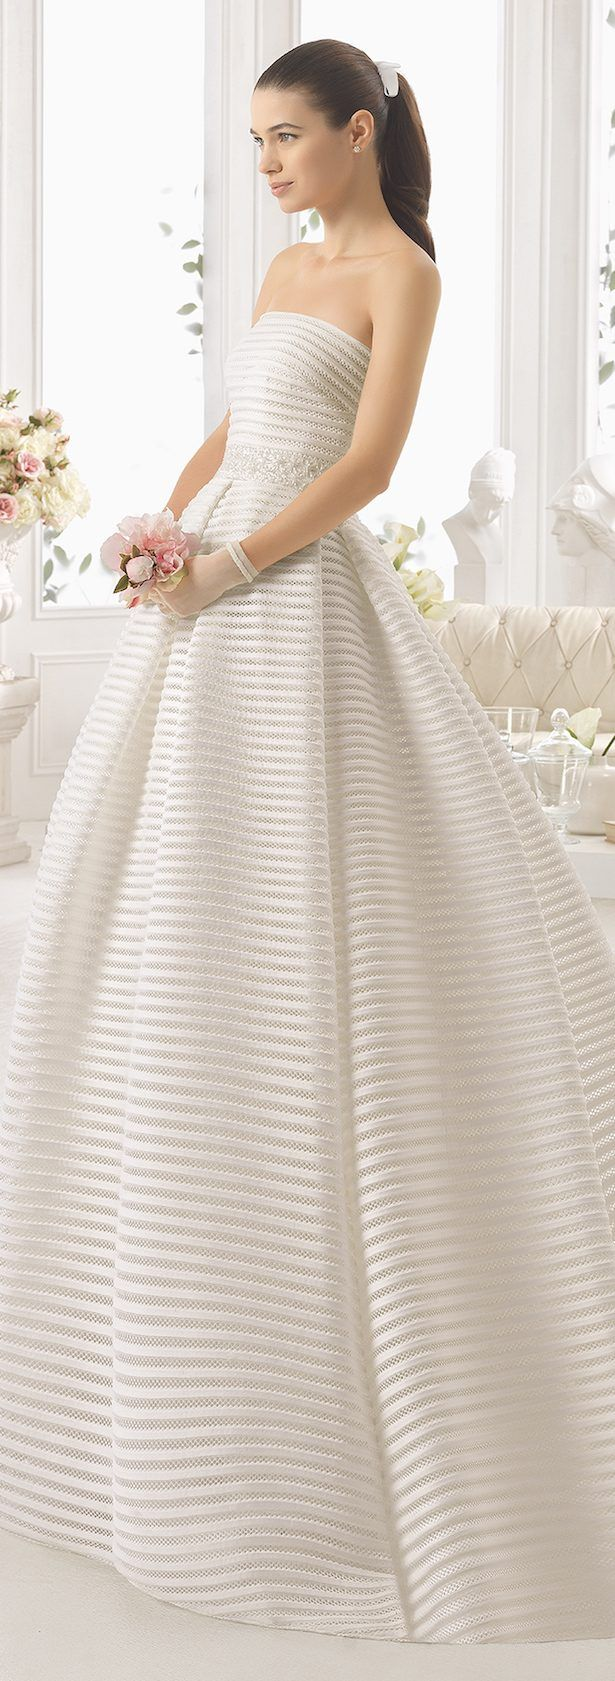 Aire barcelona wedding dresses  Wedding Dresses By Aire Barcelona  Bridal Collection  Aire